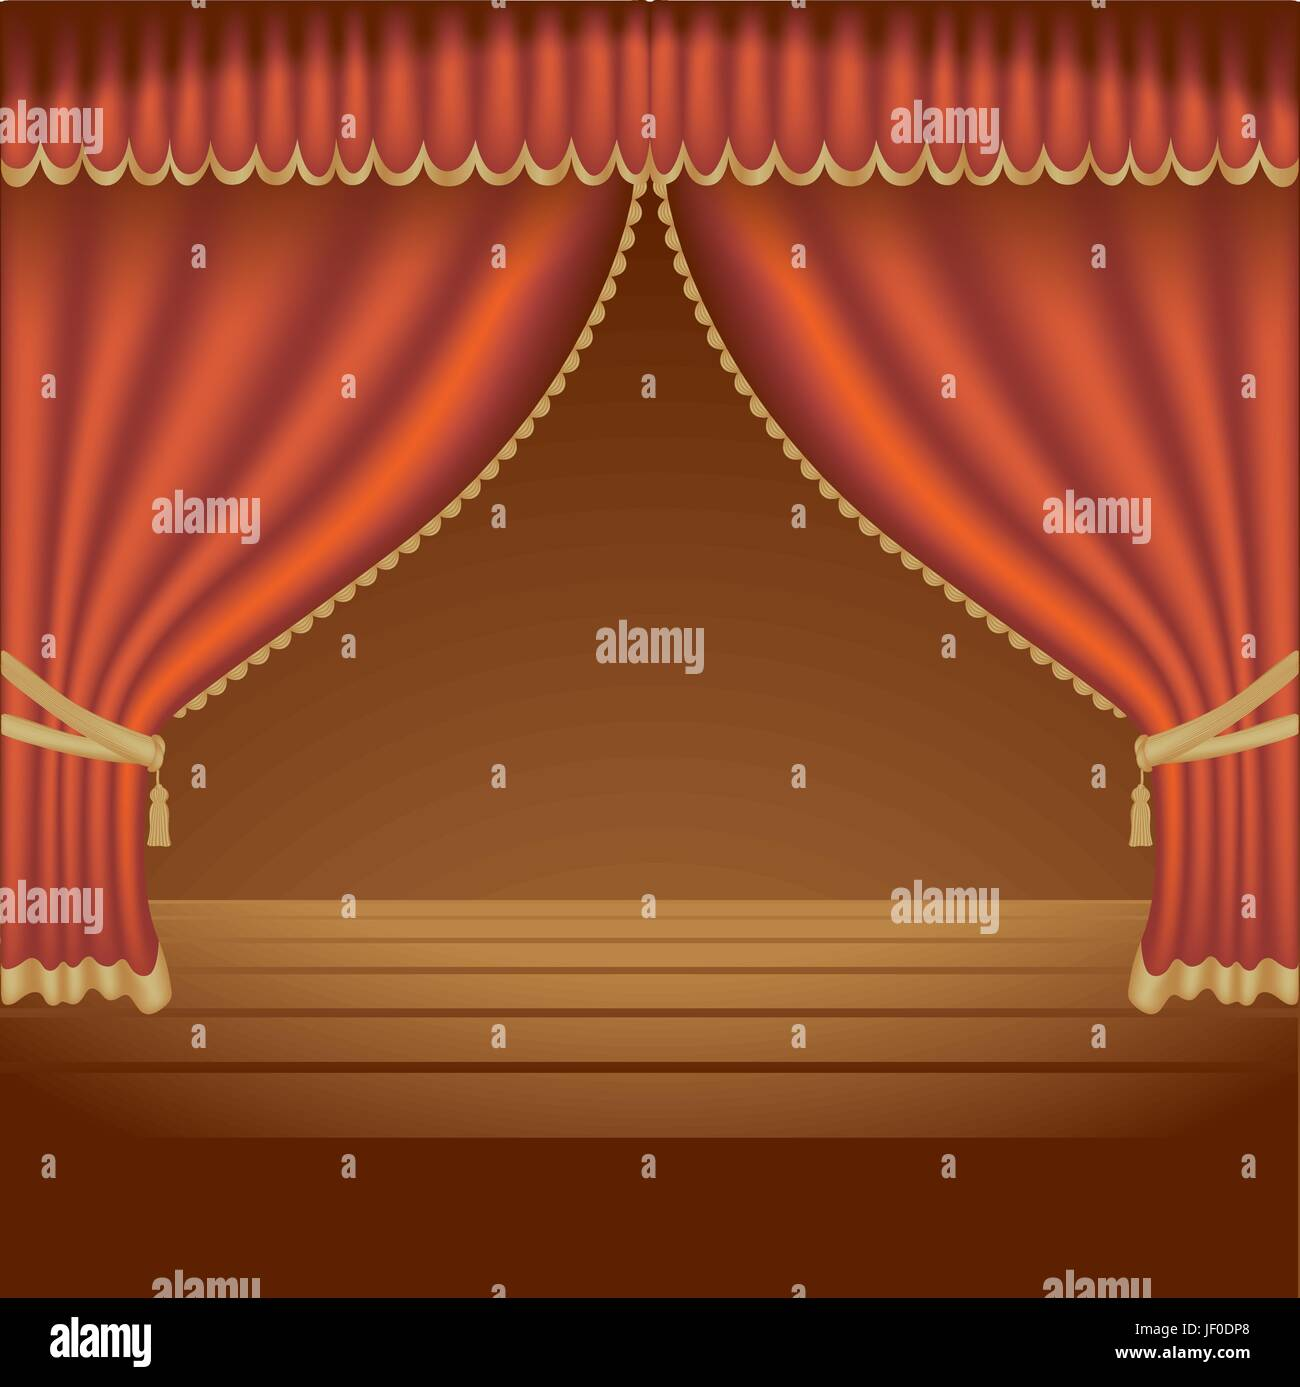 https www alamy com stock photo culture act performance curtain stage curtains backdrop background 146913600 html